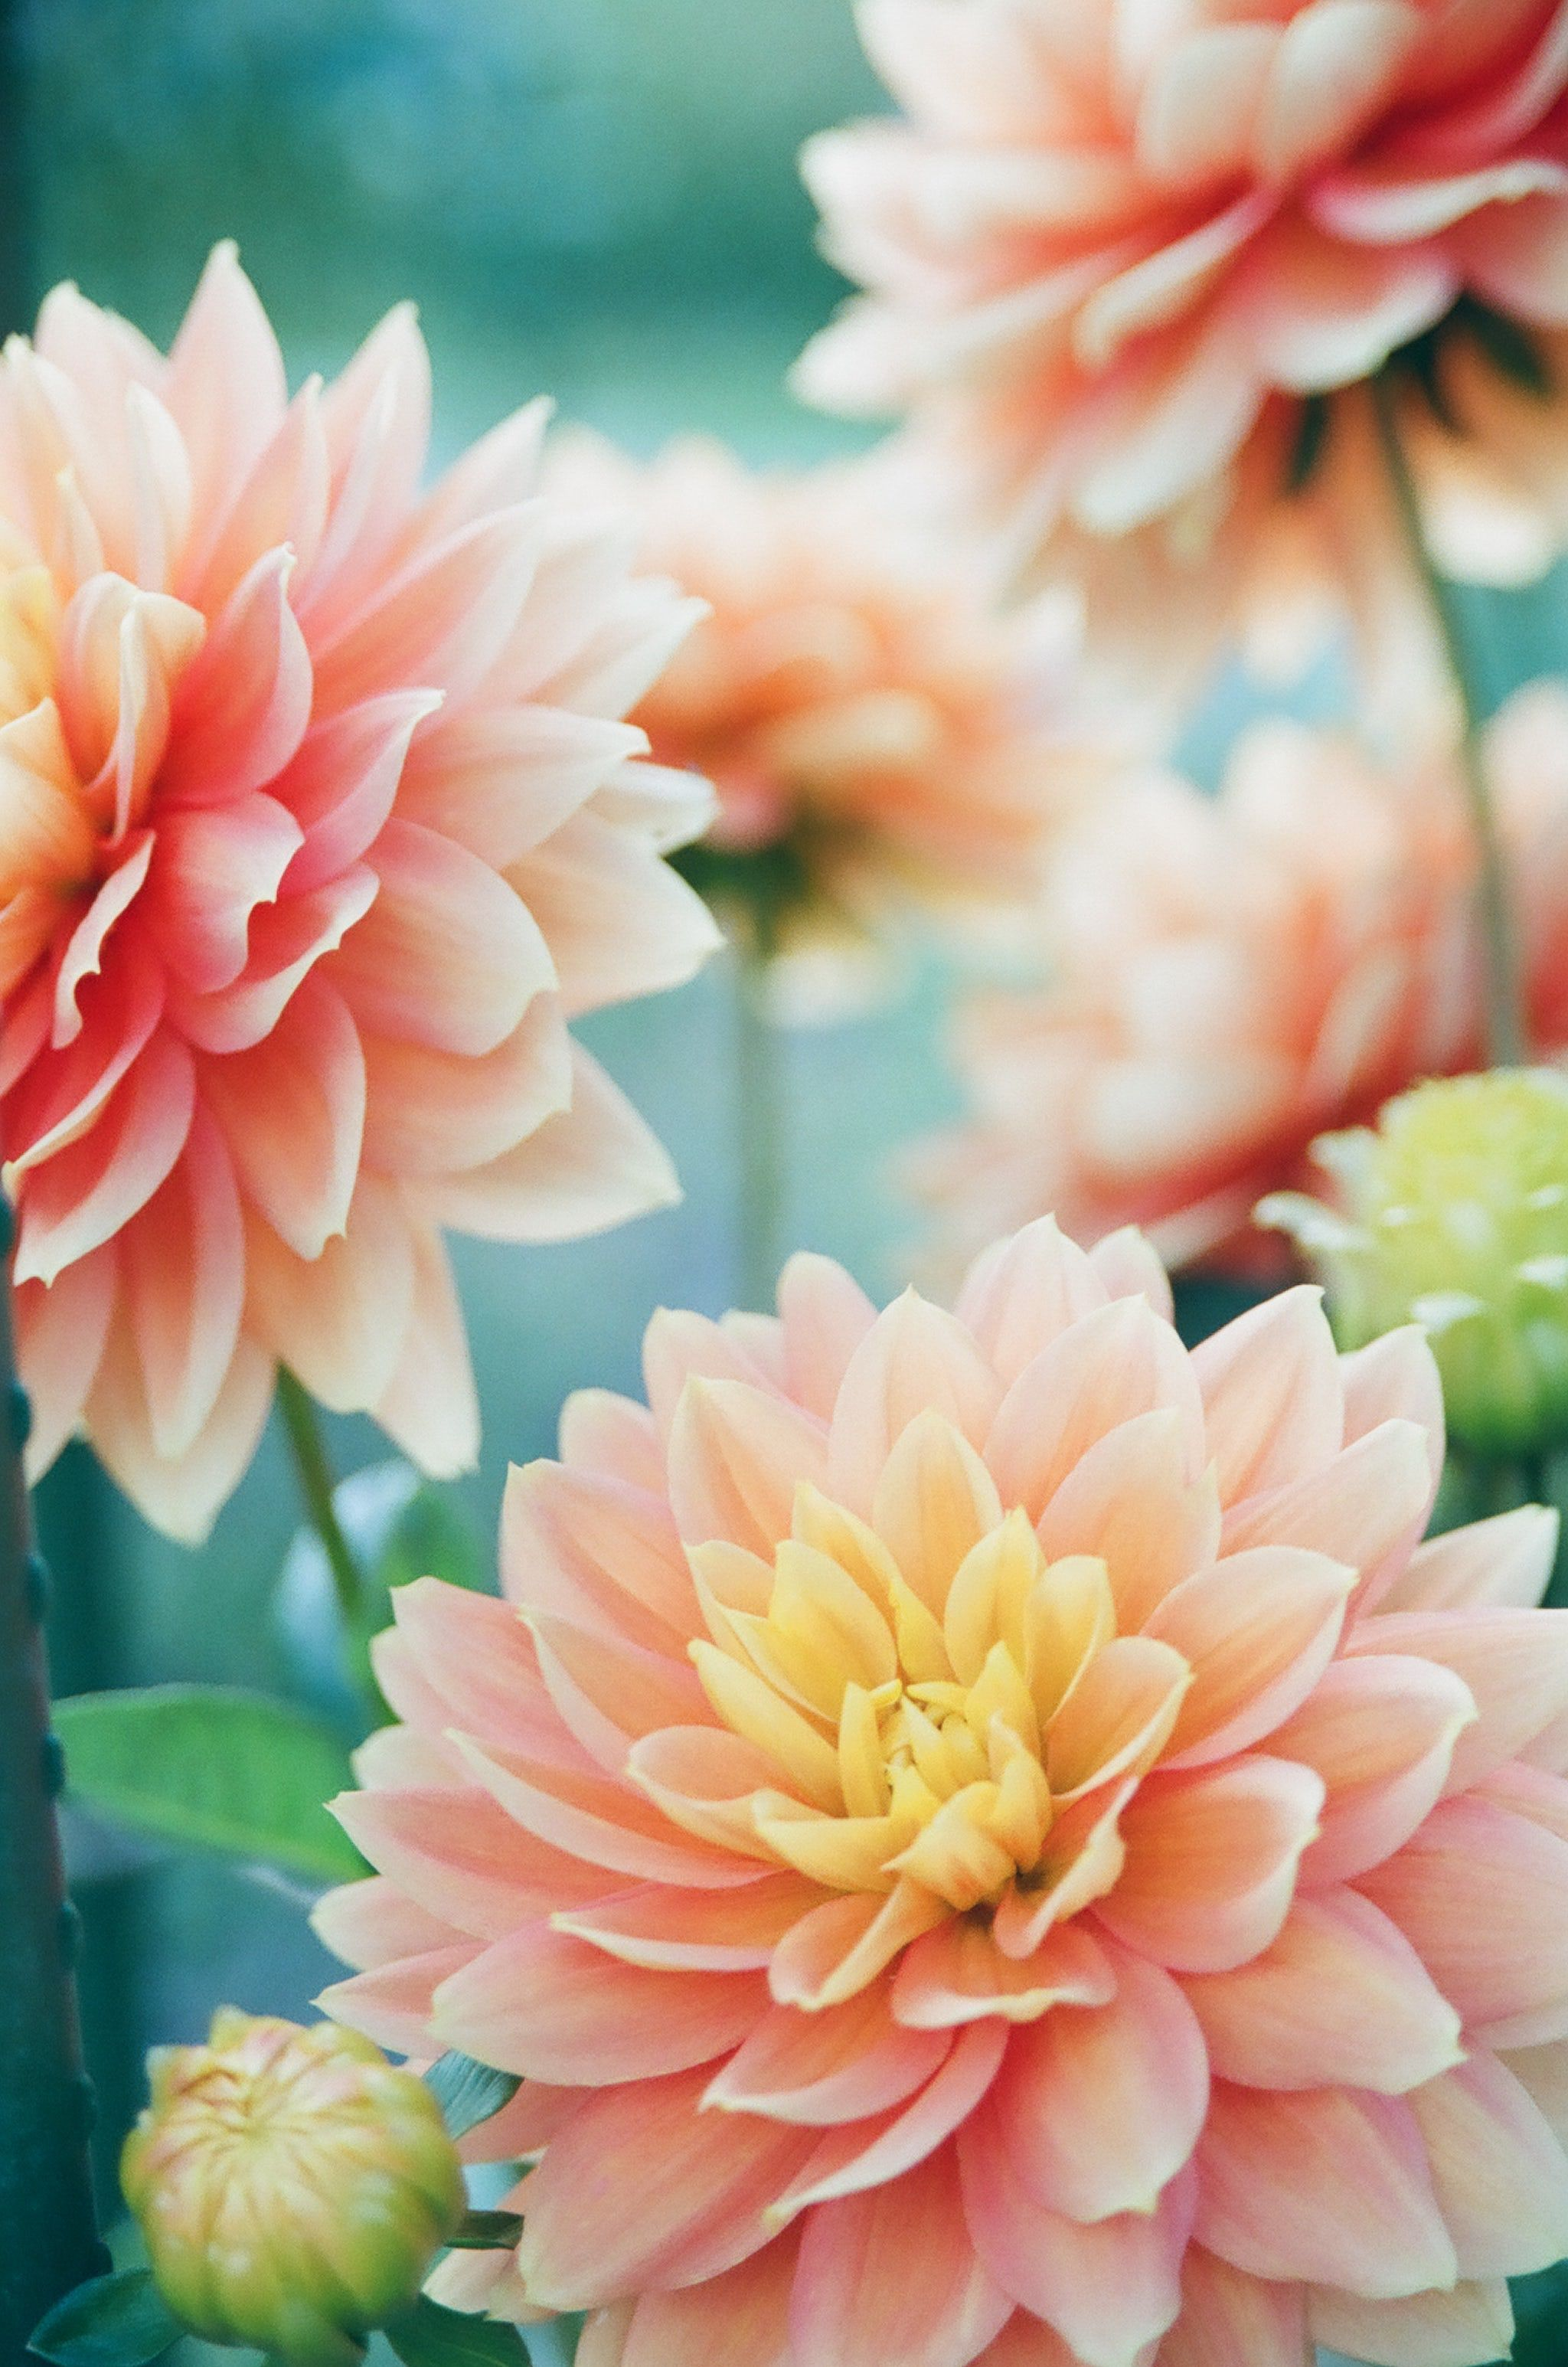 Garden Planning Dahlia Cnd Dark Dahlia Dahlia Kruka Dahlias In Pots Dahlia Painting How To Grow Dahlias D In 2020 Flower Pictures Flower Wallpaper Dahlia Flower